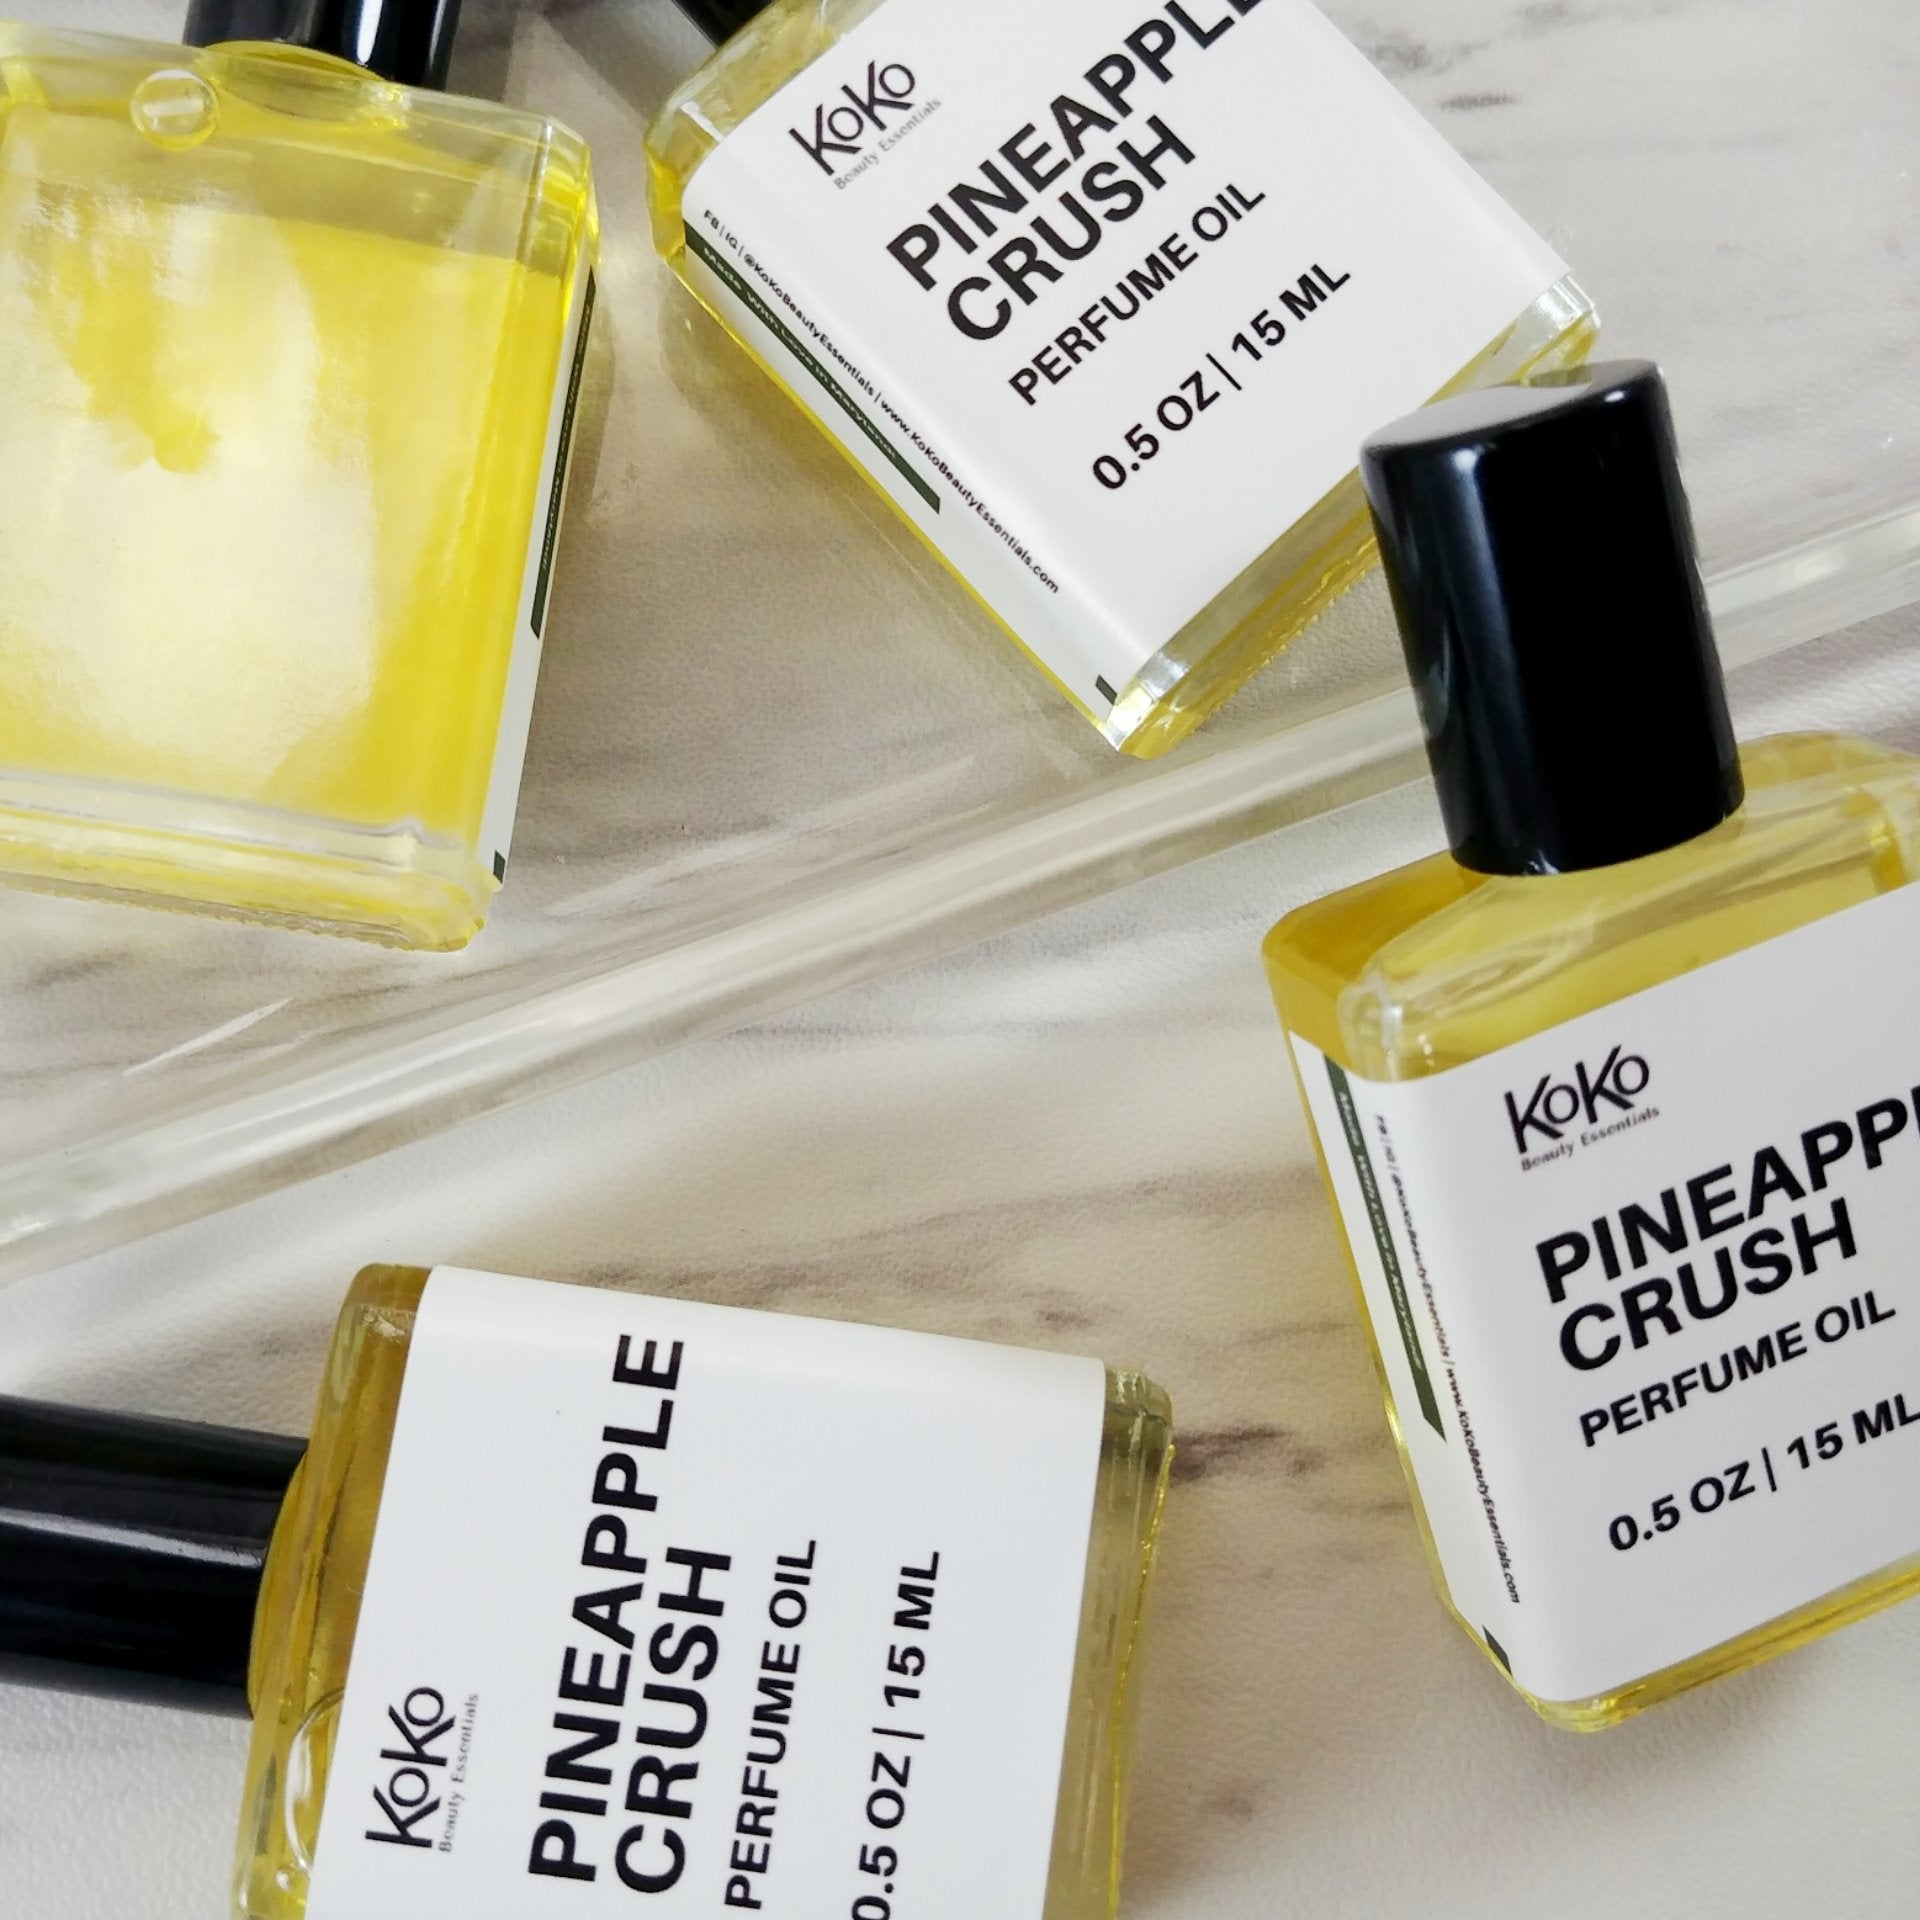 Pineapple Crush Perfume Oil